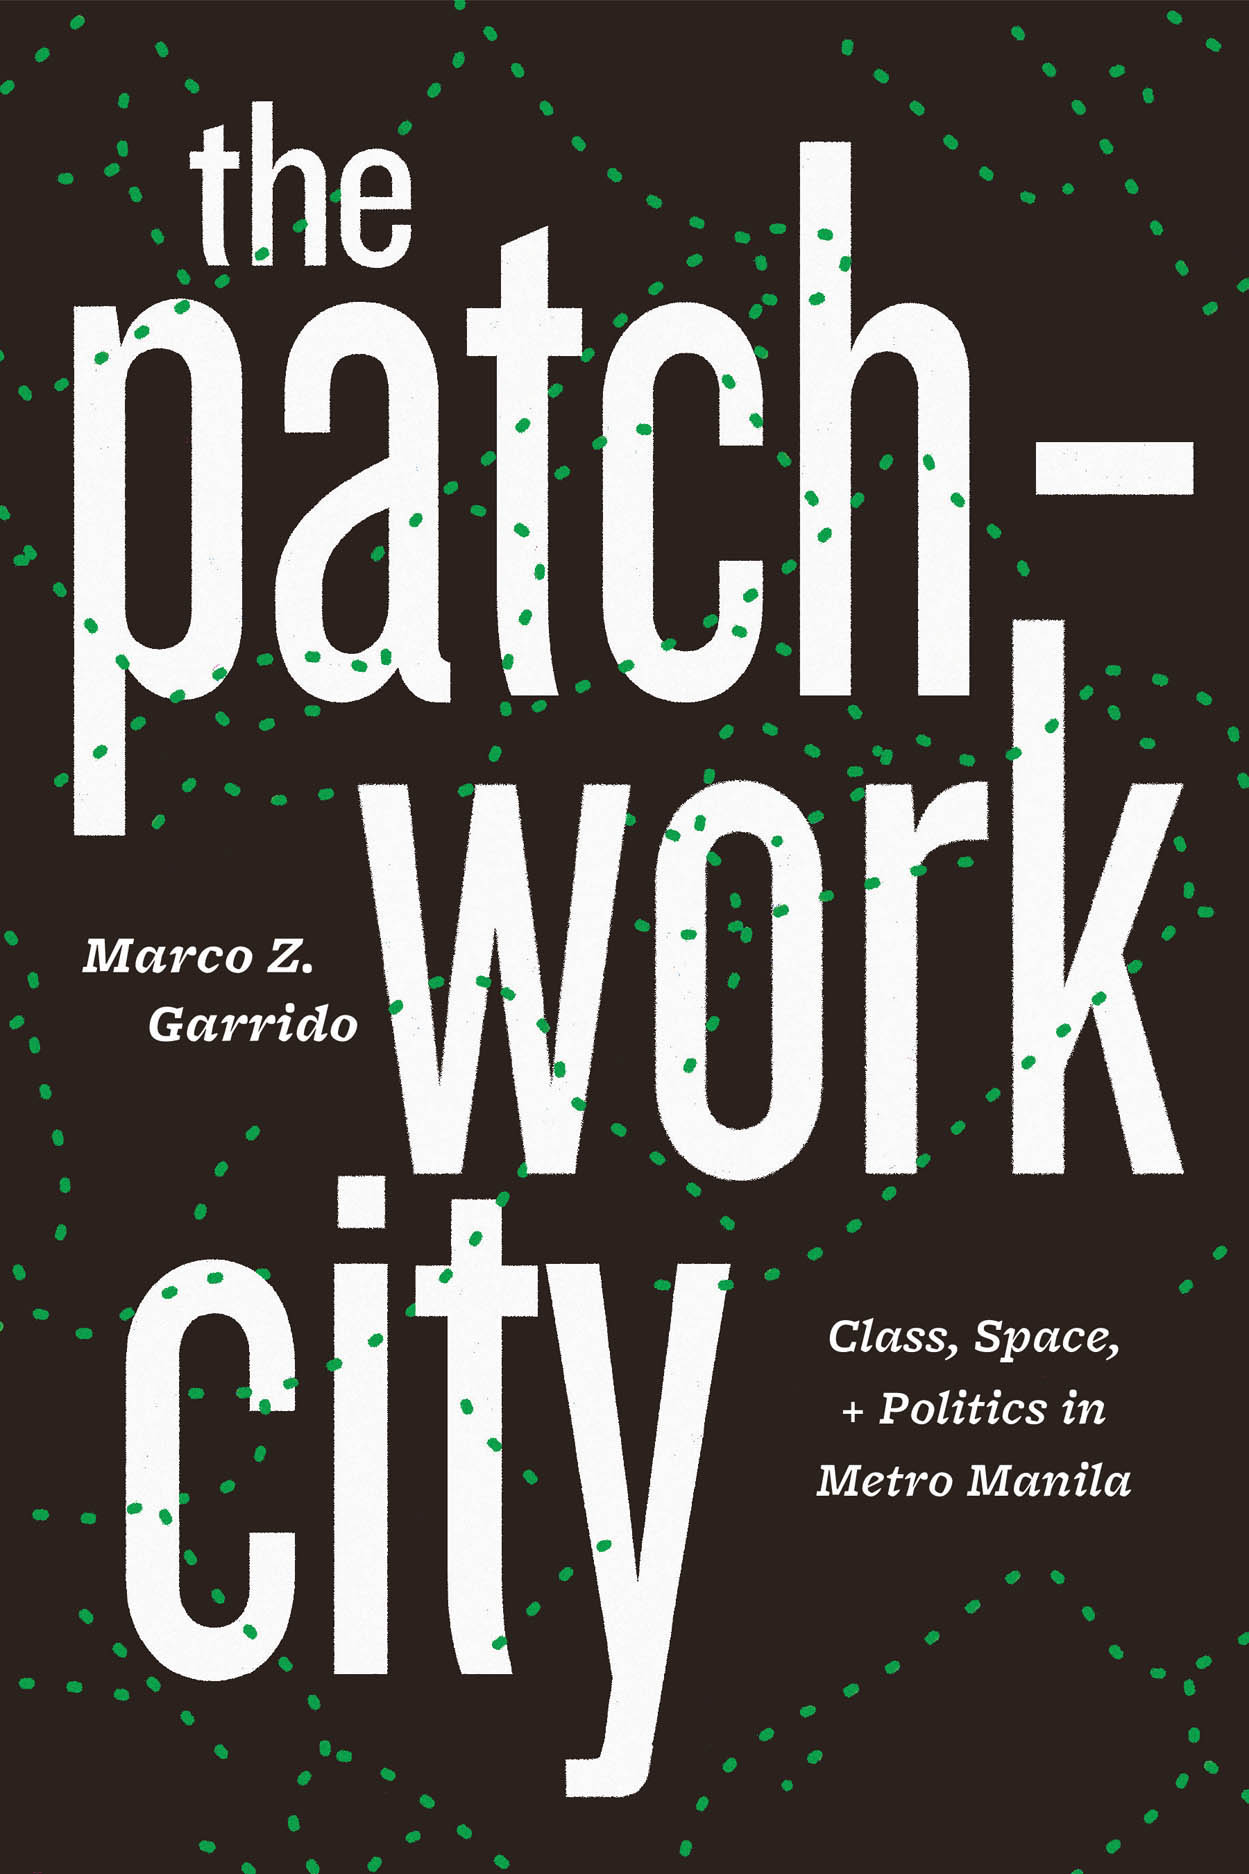 The Patchwork City